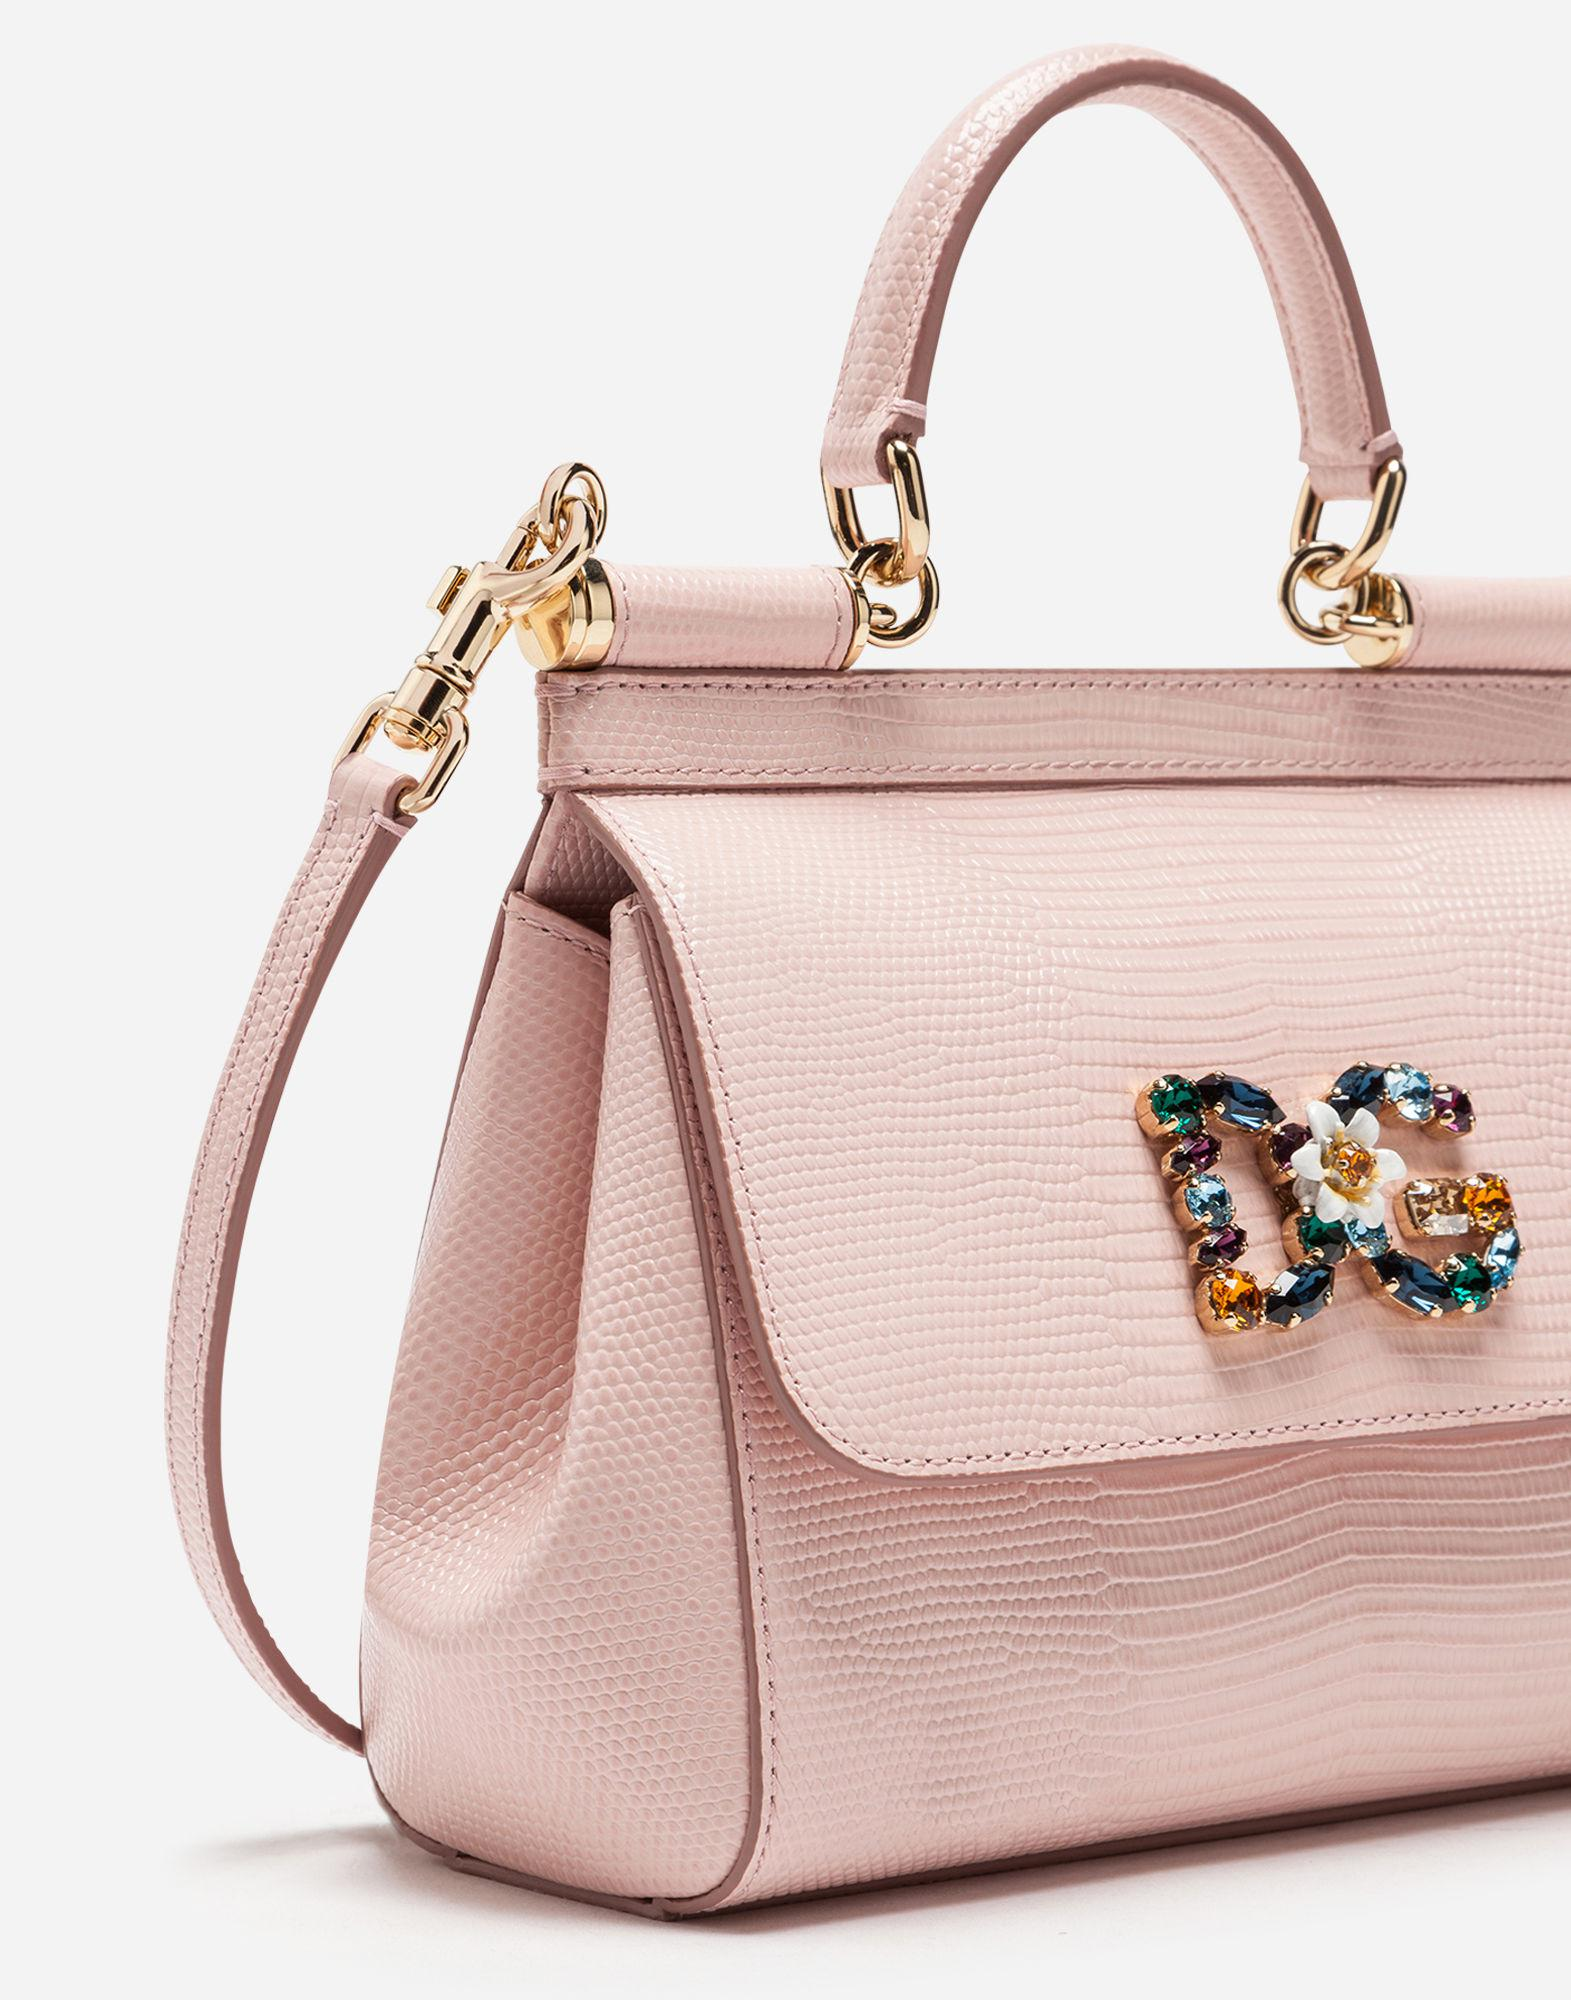 Lyst - Dolce   Gabbana Small Calfskin Sicily Bag With Iguana-print And Dg  Crystal Logo Patch in Pink 3f08fff8ba